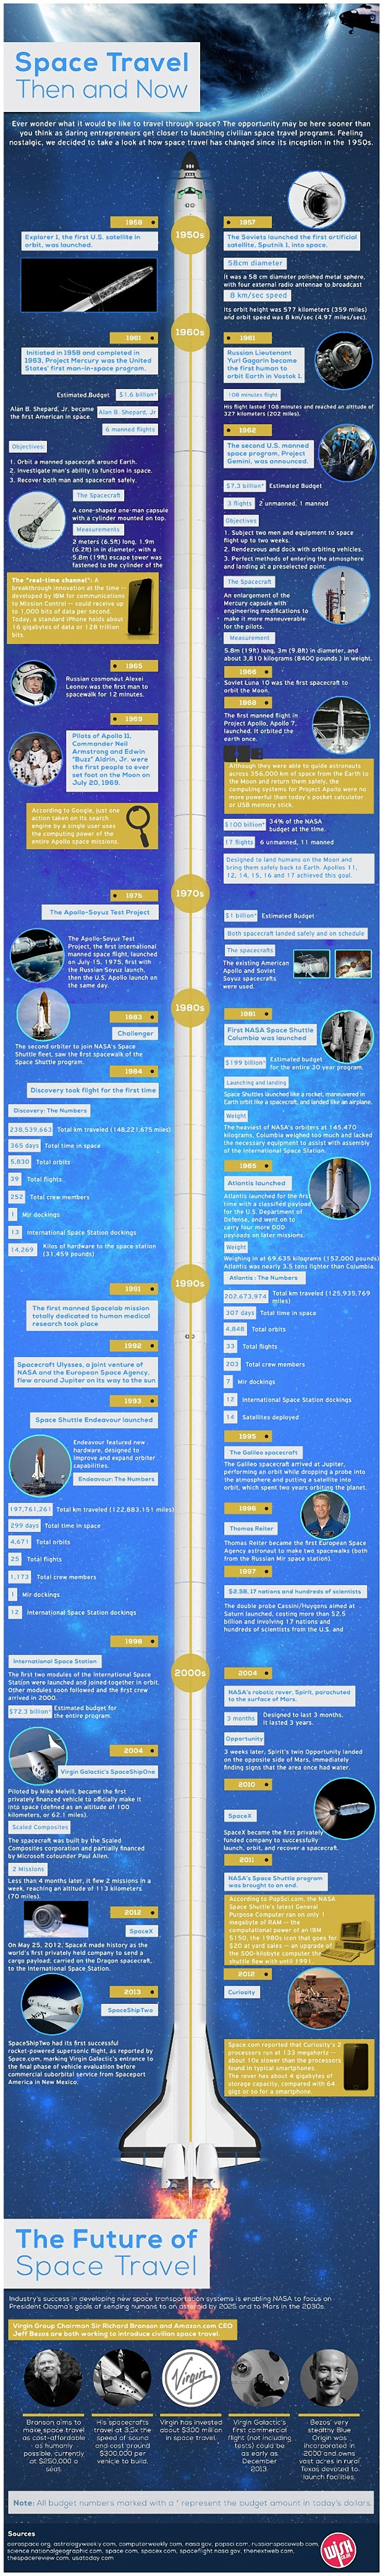 A Graphic History of Space Travel